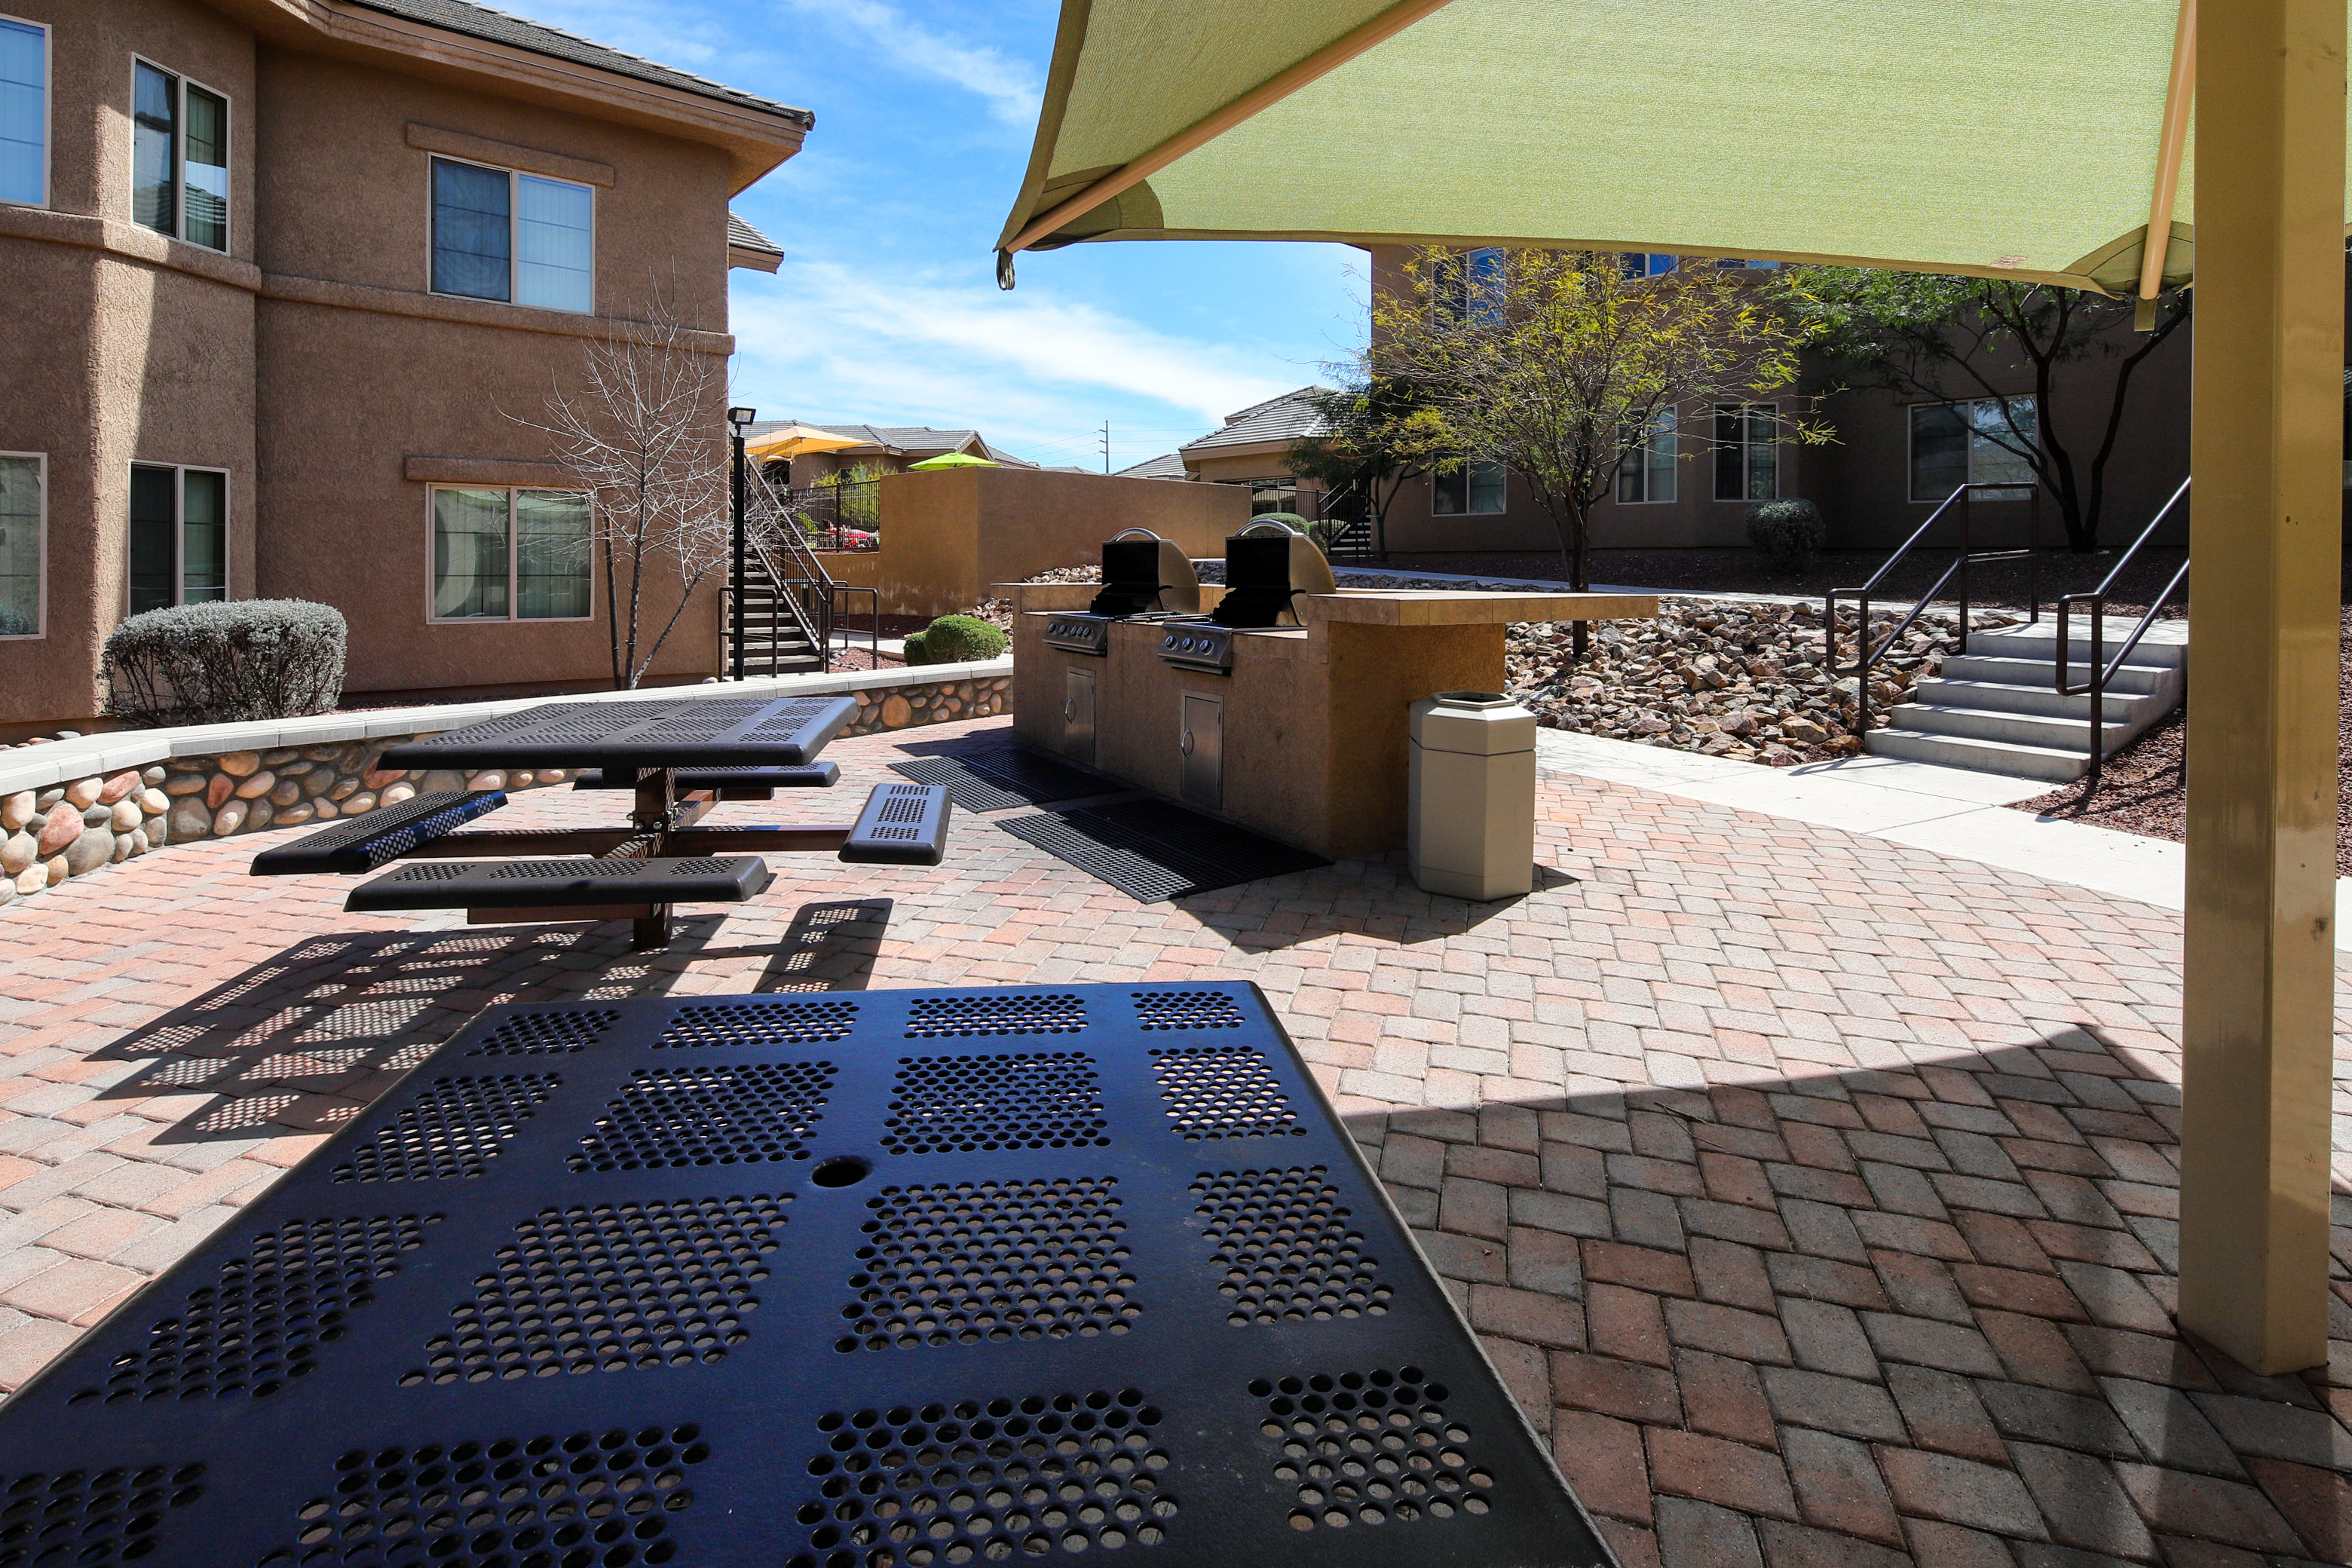 outdoor gathering spaces with bbq